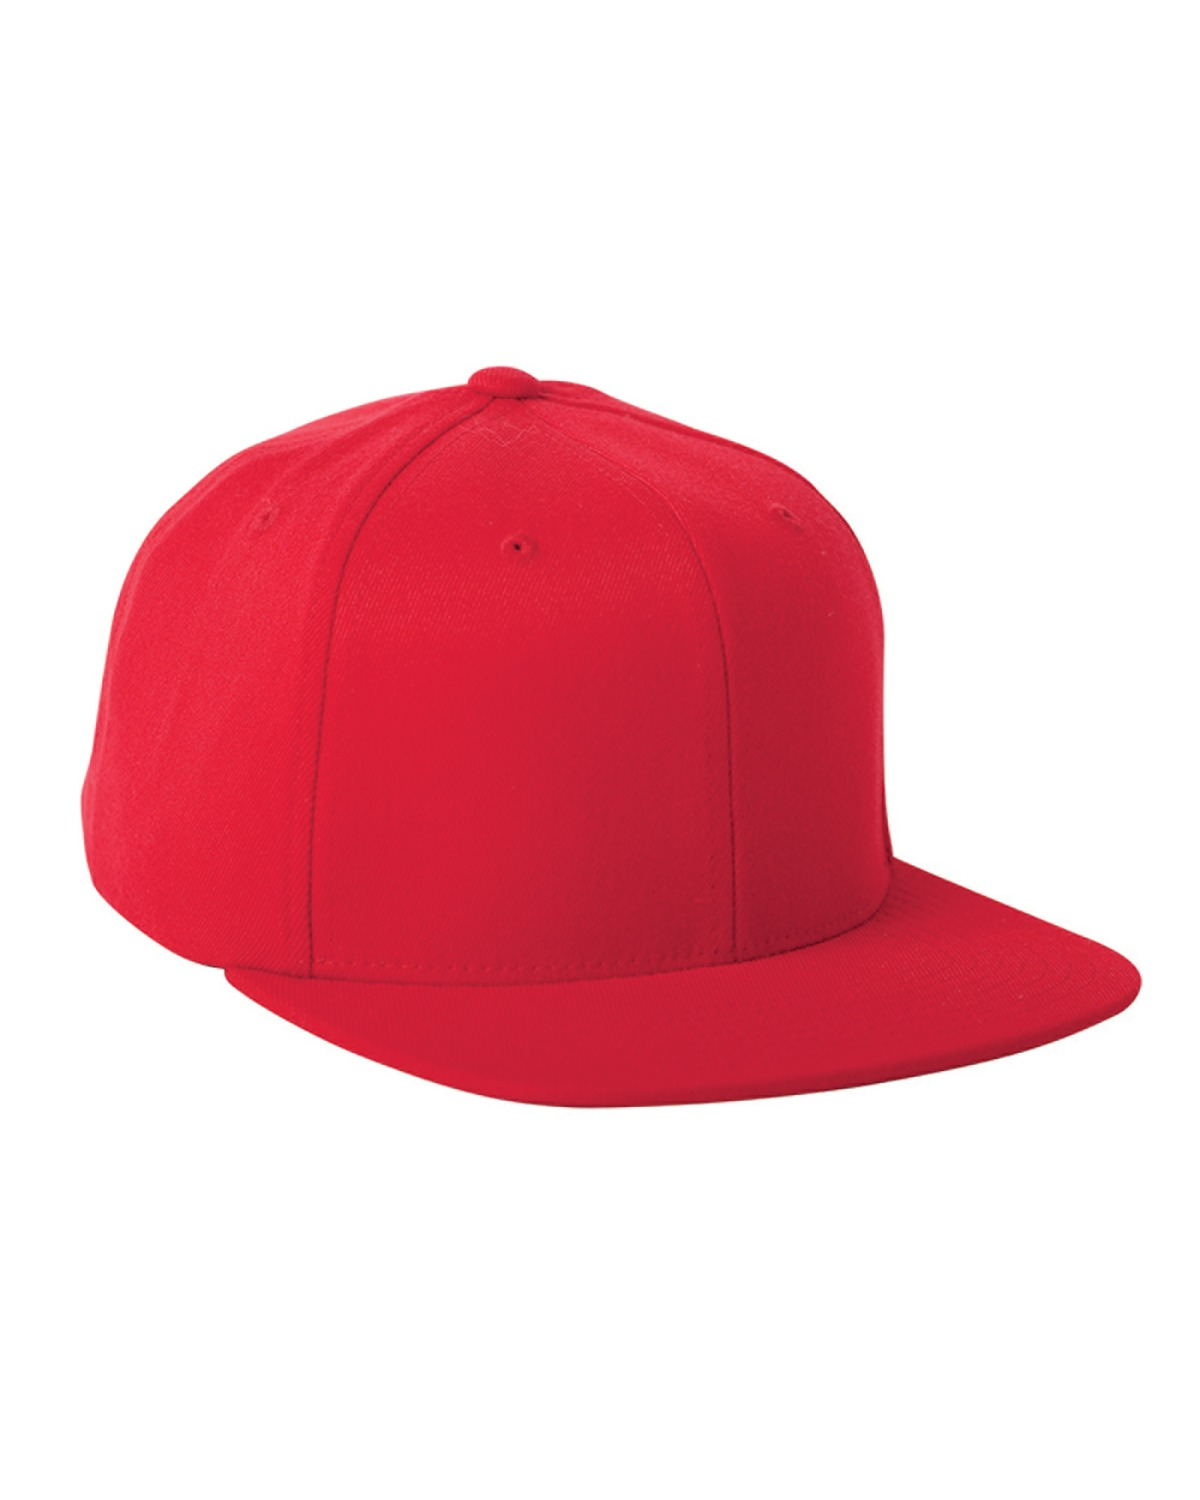 Flexfit 110F - Wool Blend Flat Bill Snapback Cap